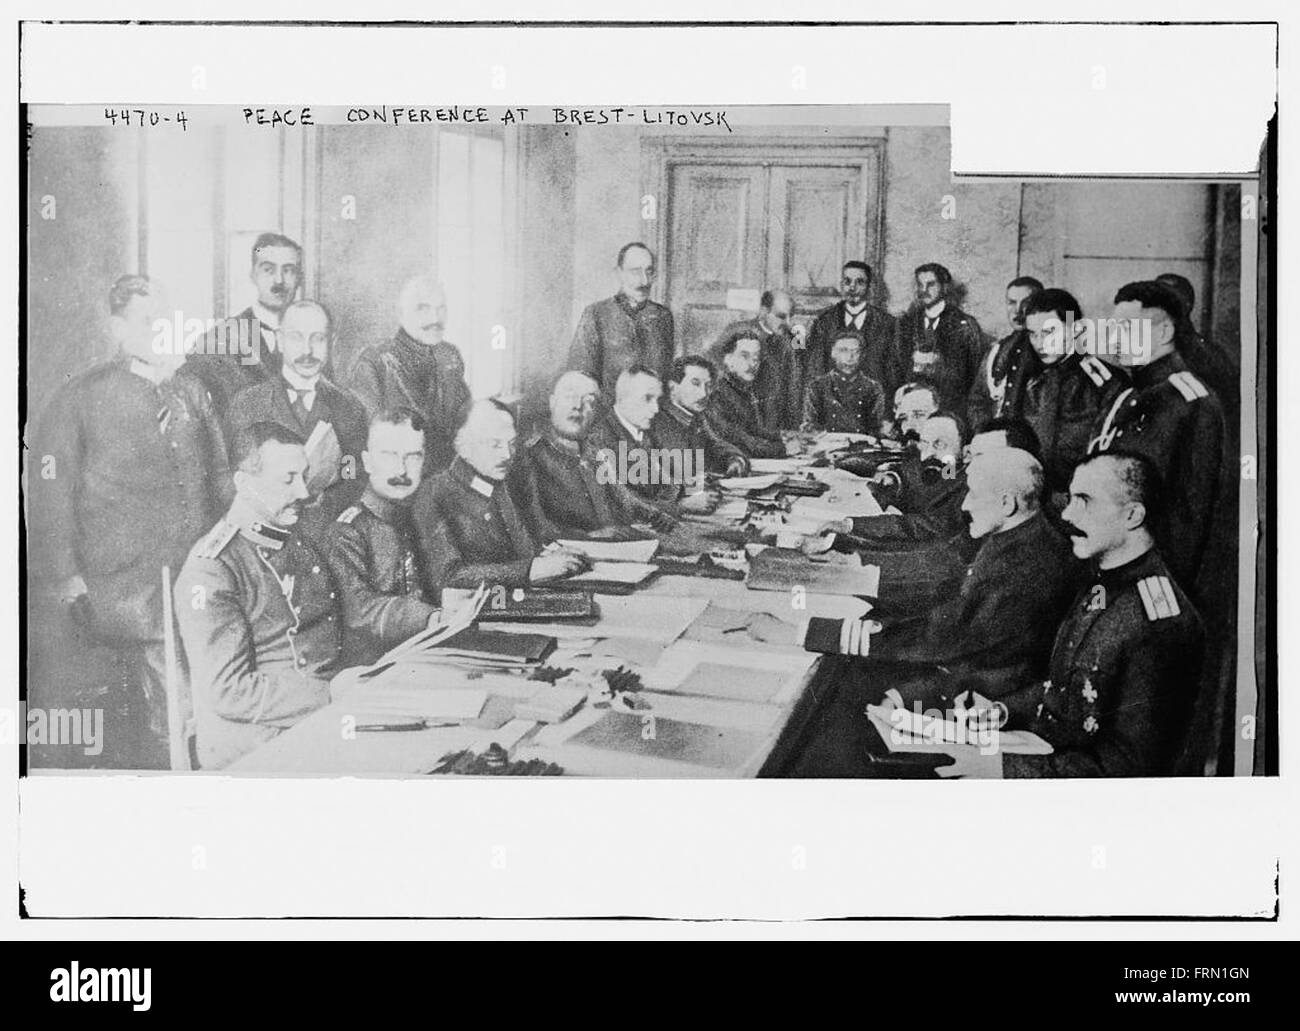 Peace Conference at Brest-Litovsk - Stock Image